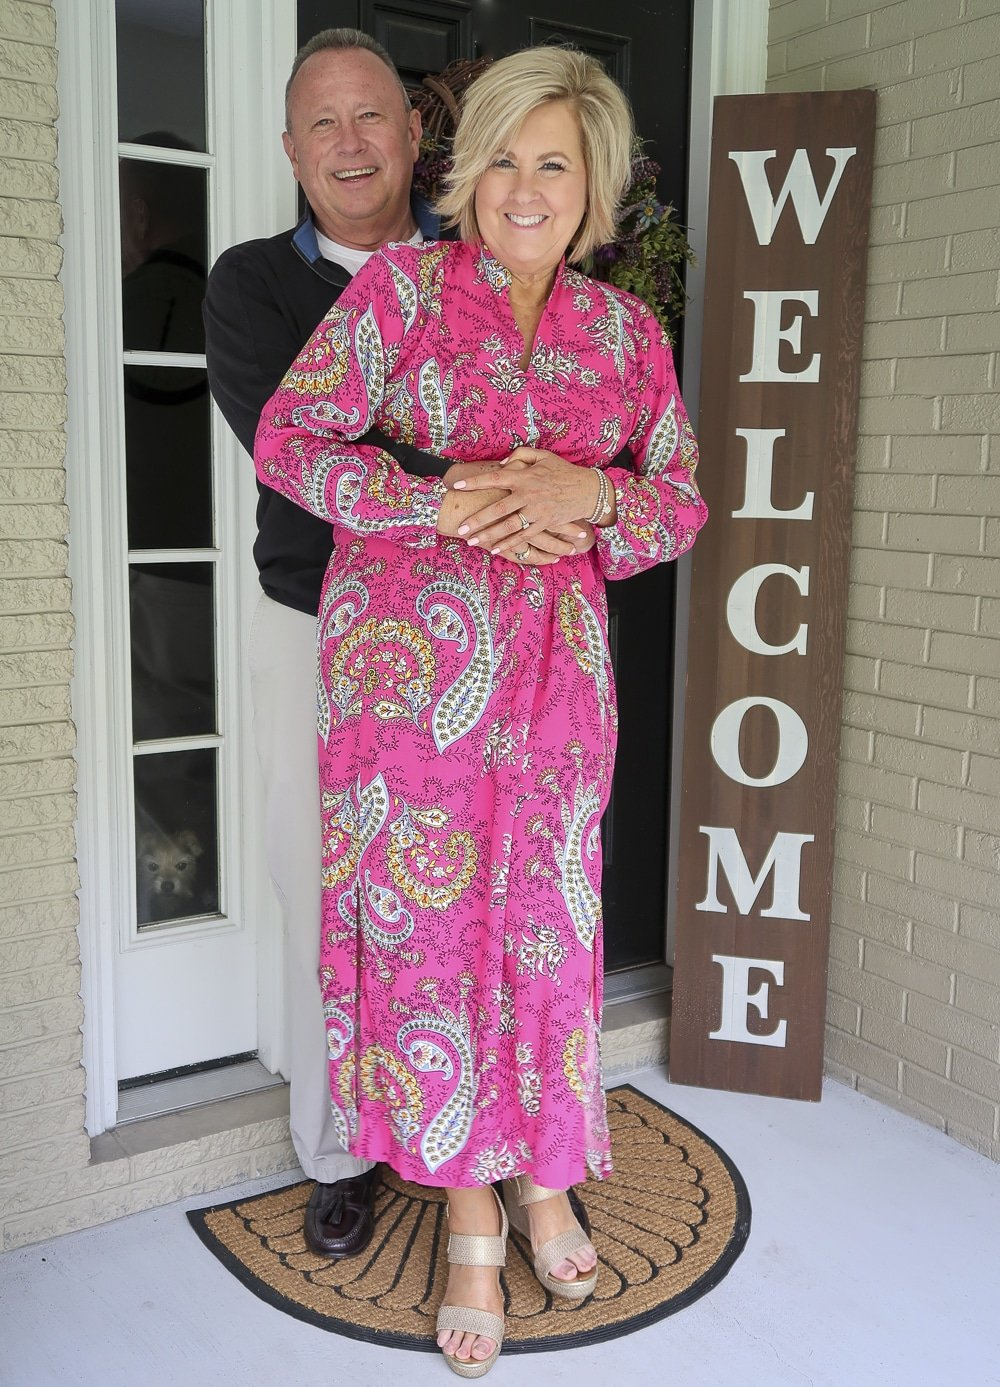 Fashion Blogger 50 Is Not Old and her husband are hugged up for a photo. She is wearing a bright pink paisley midi dress and gold espadrille sandals